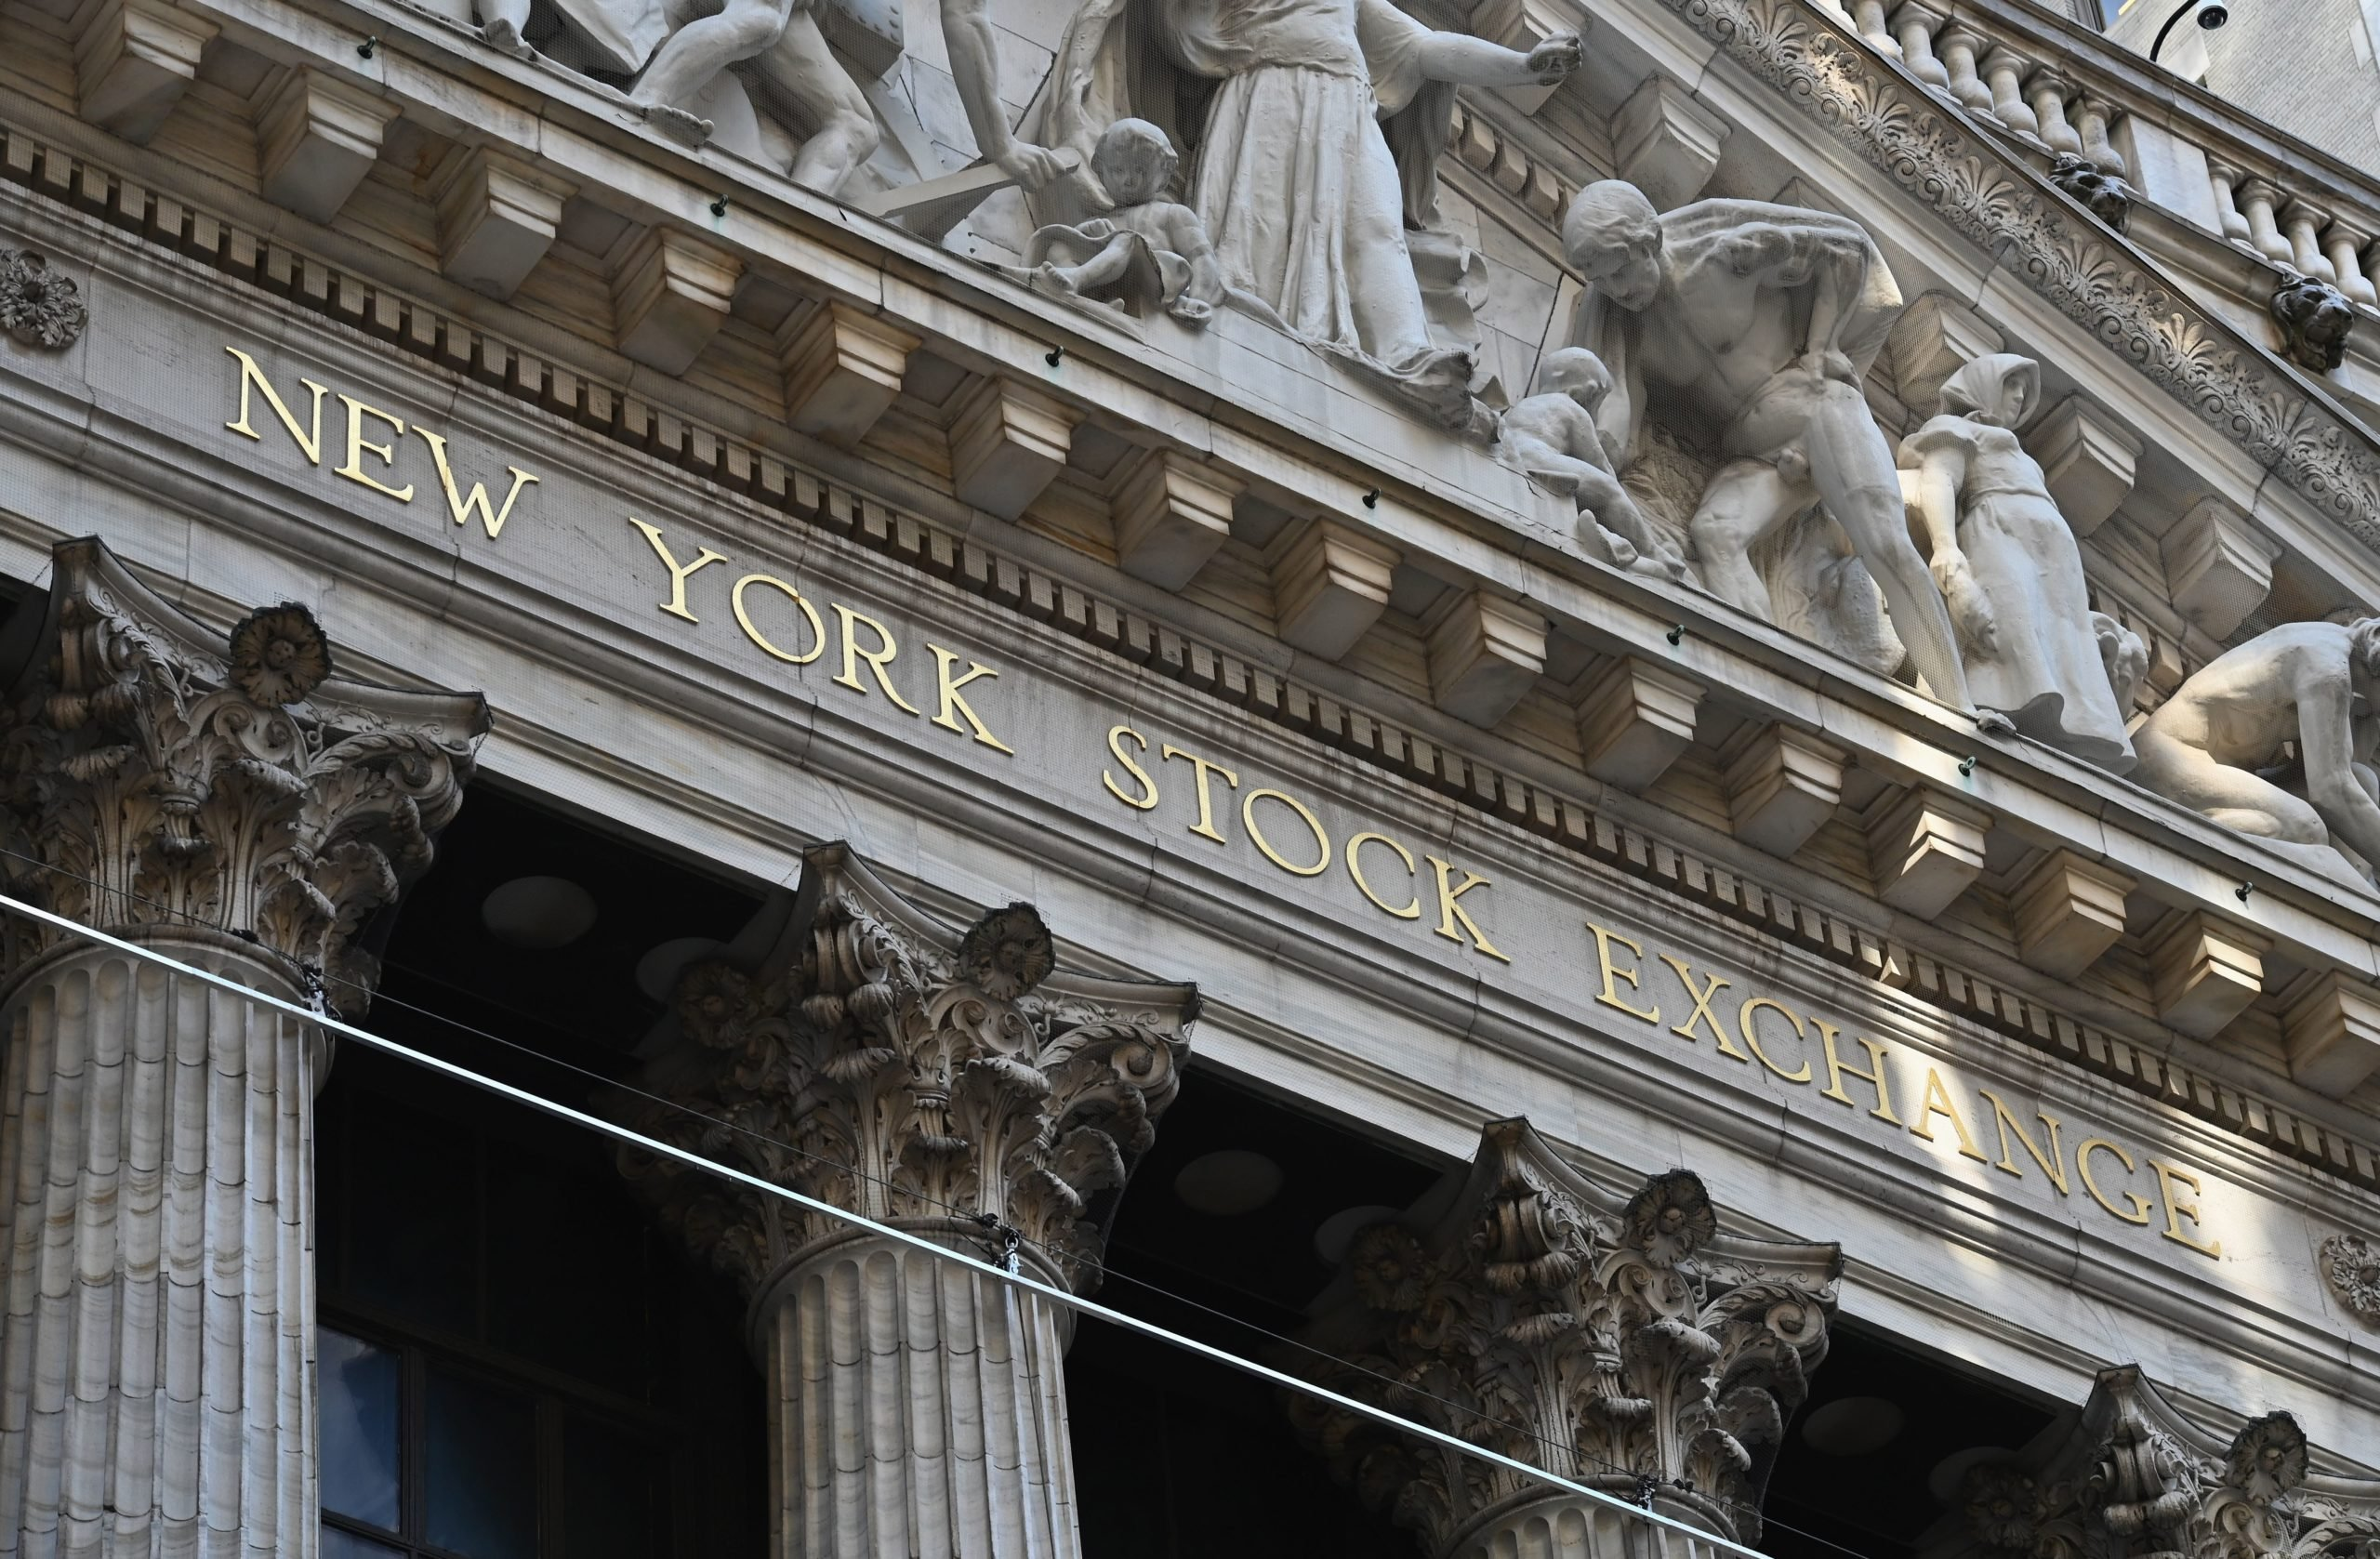 A view of the New York Stock Exchange is seen at Wall Street on June 29, 2020 in New York City. (Angela Weiss/AFP via Getty Images)